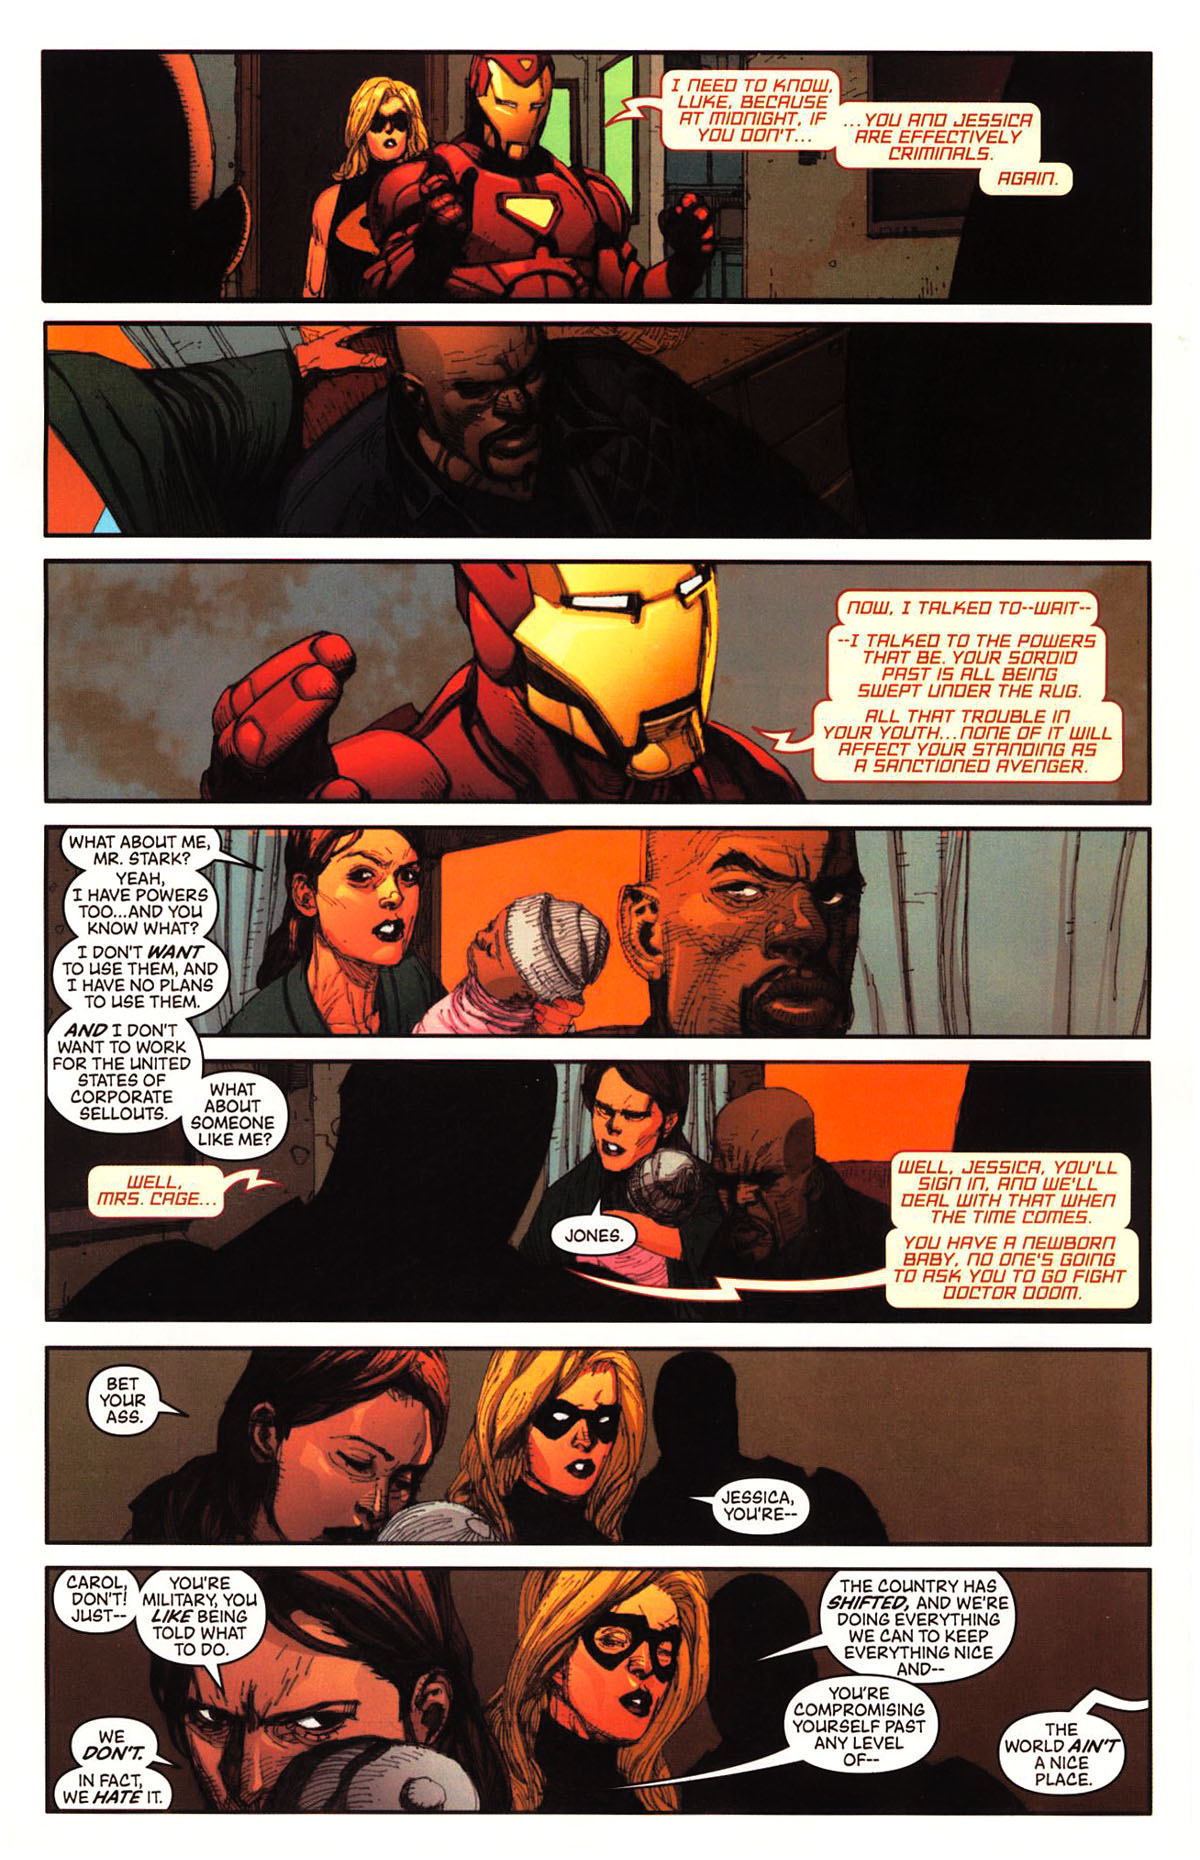 Luke Cage compares the registration act to slavery